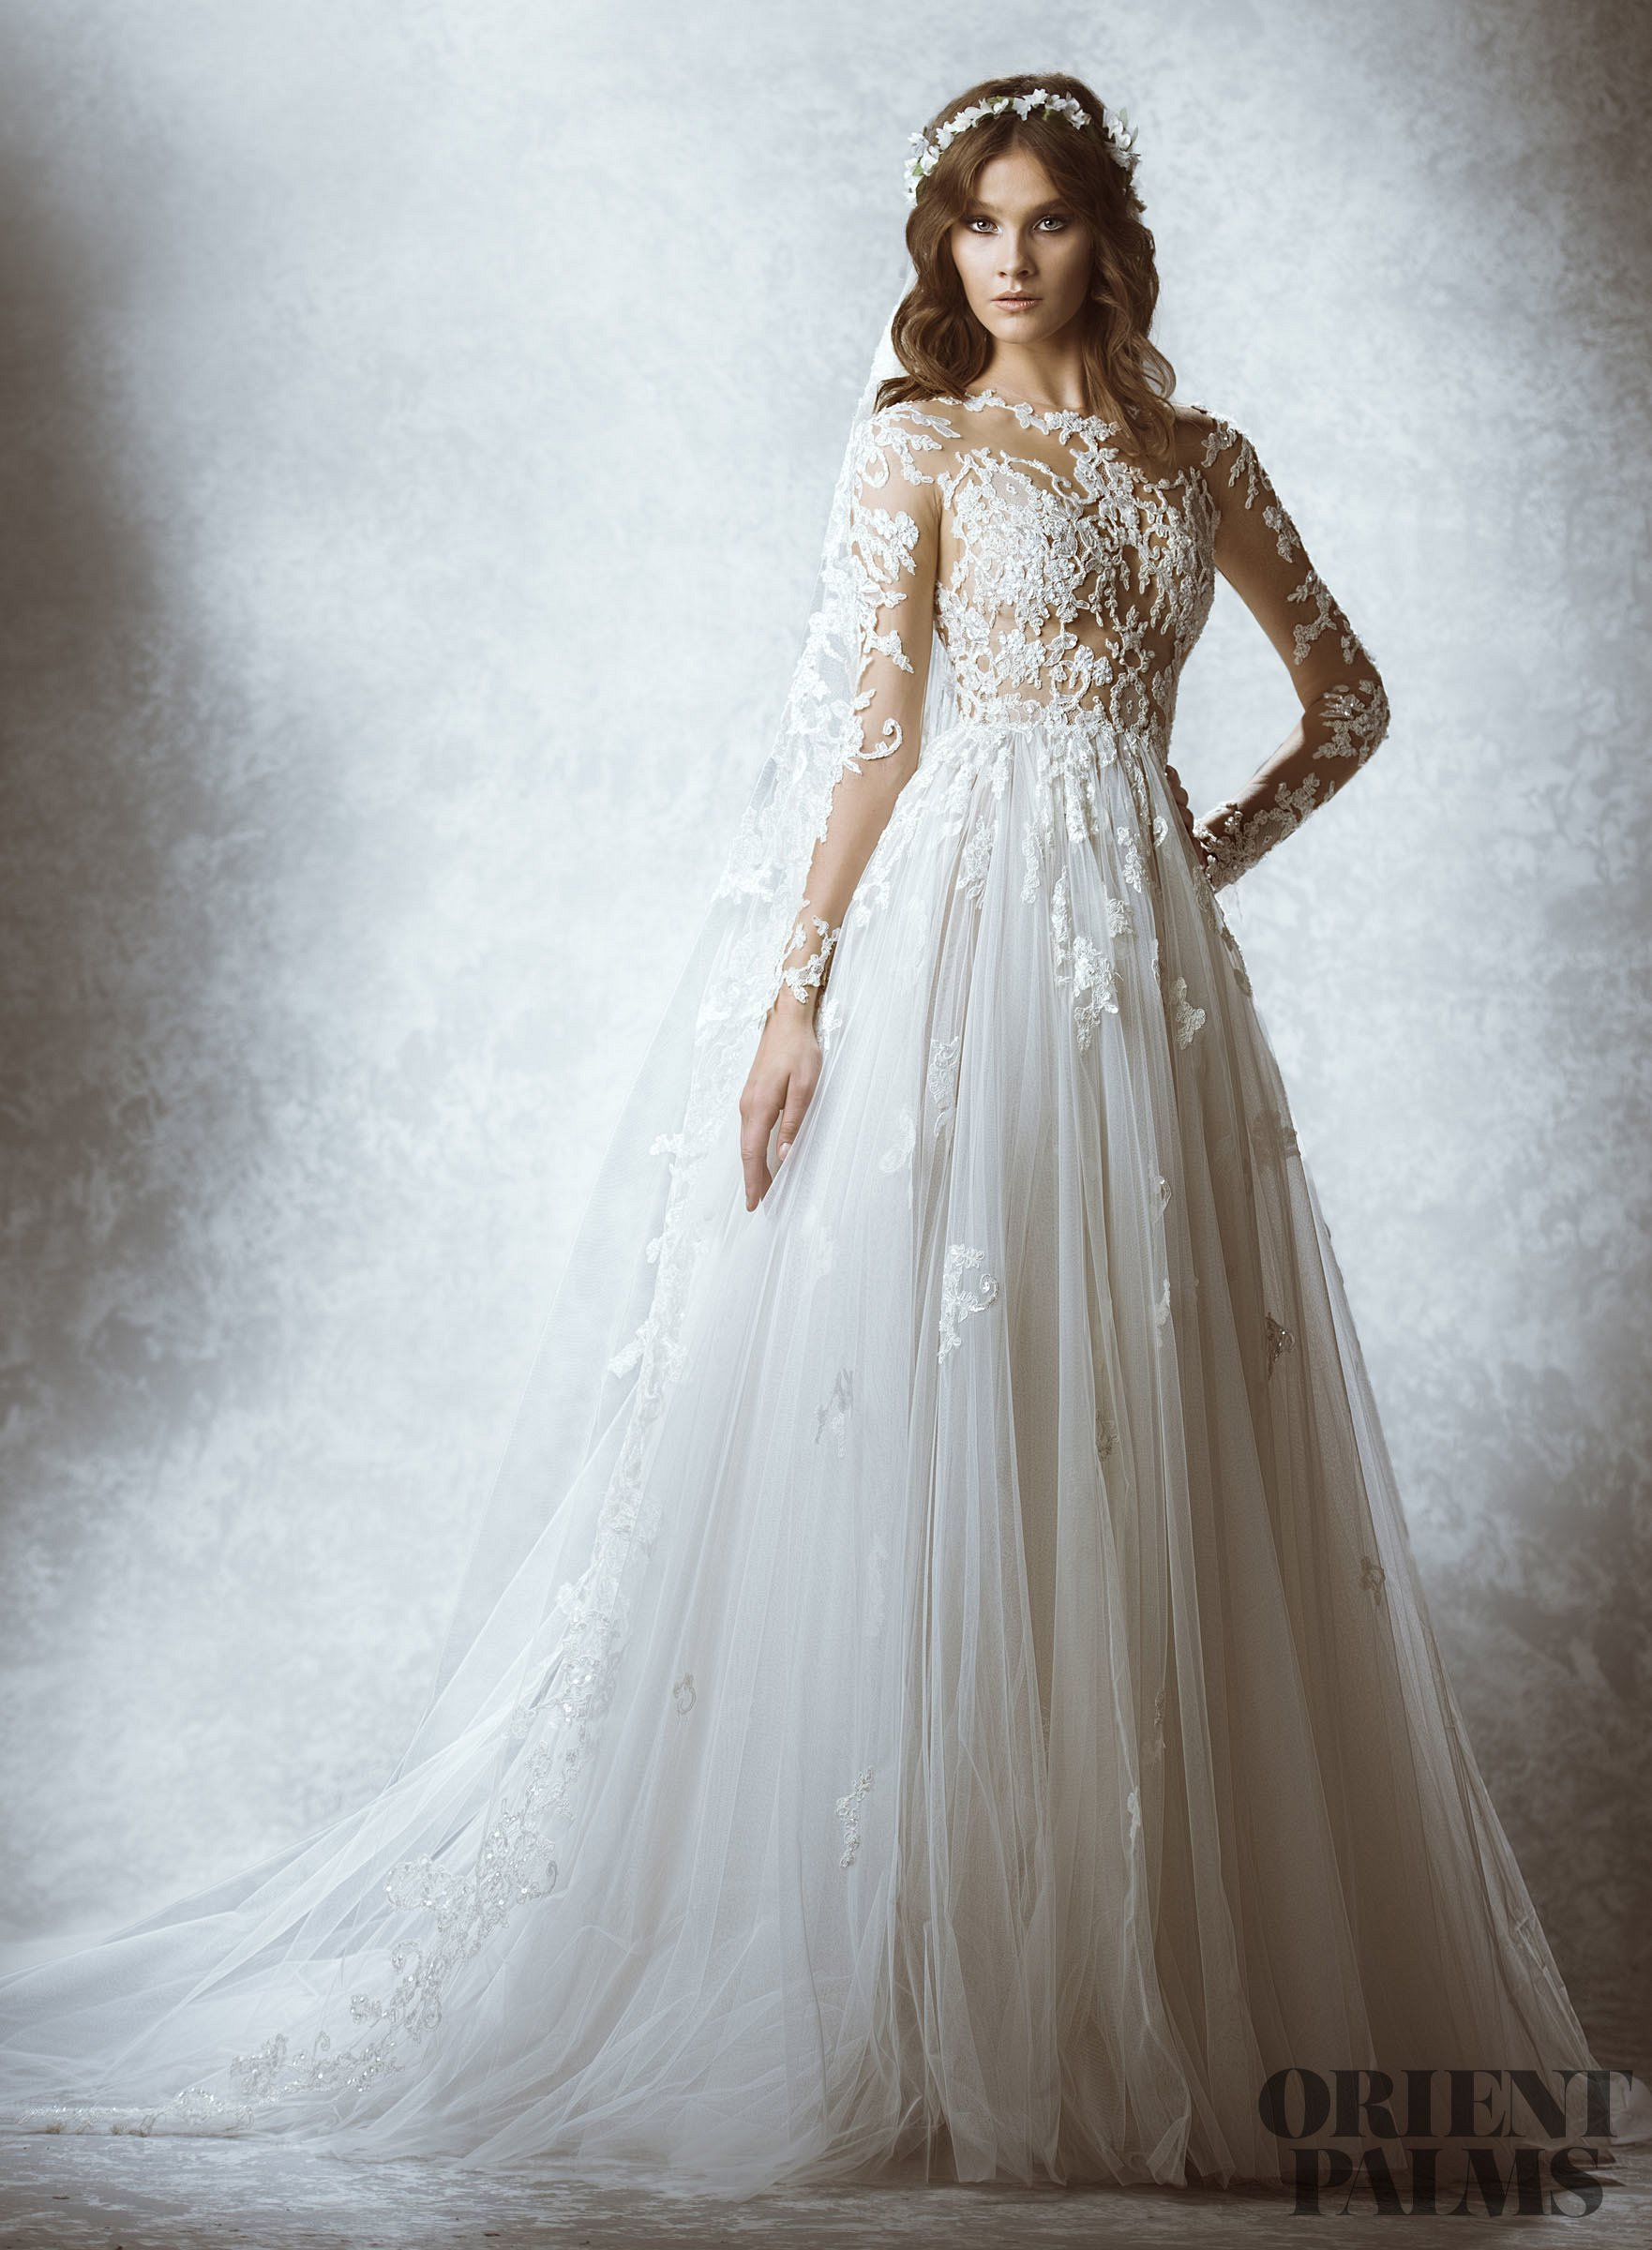 Home Bridal Zuhair Murad Fashion Designer Maison Fall Winter 2015 2016